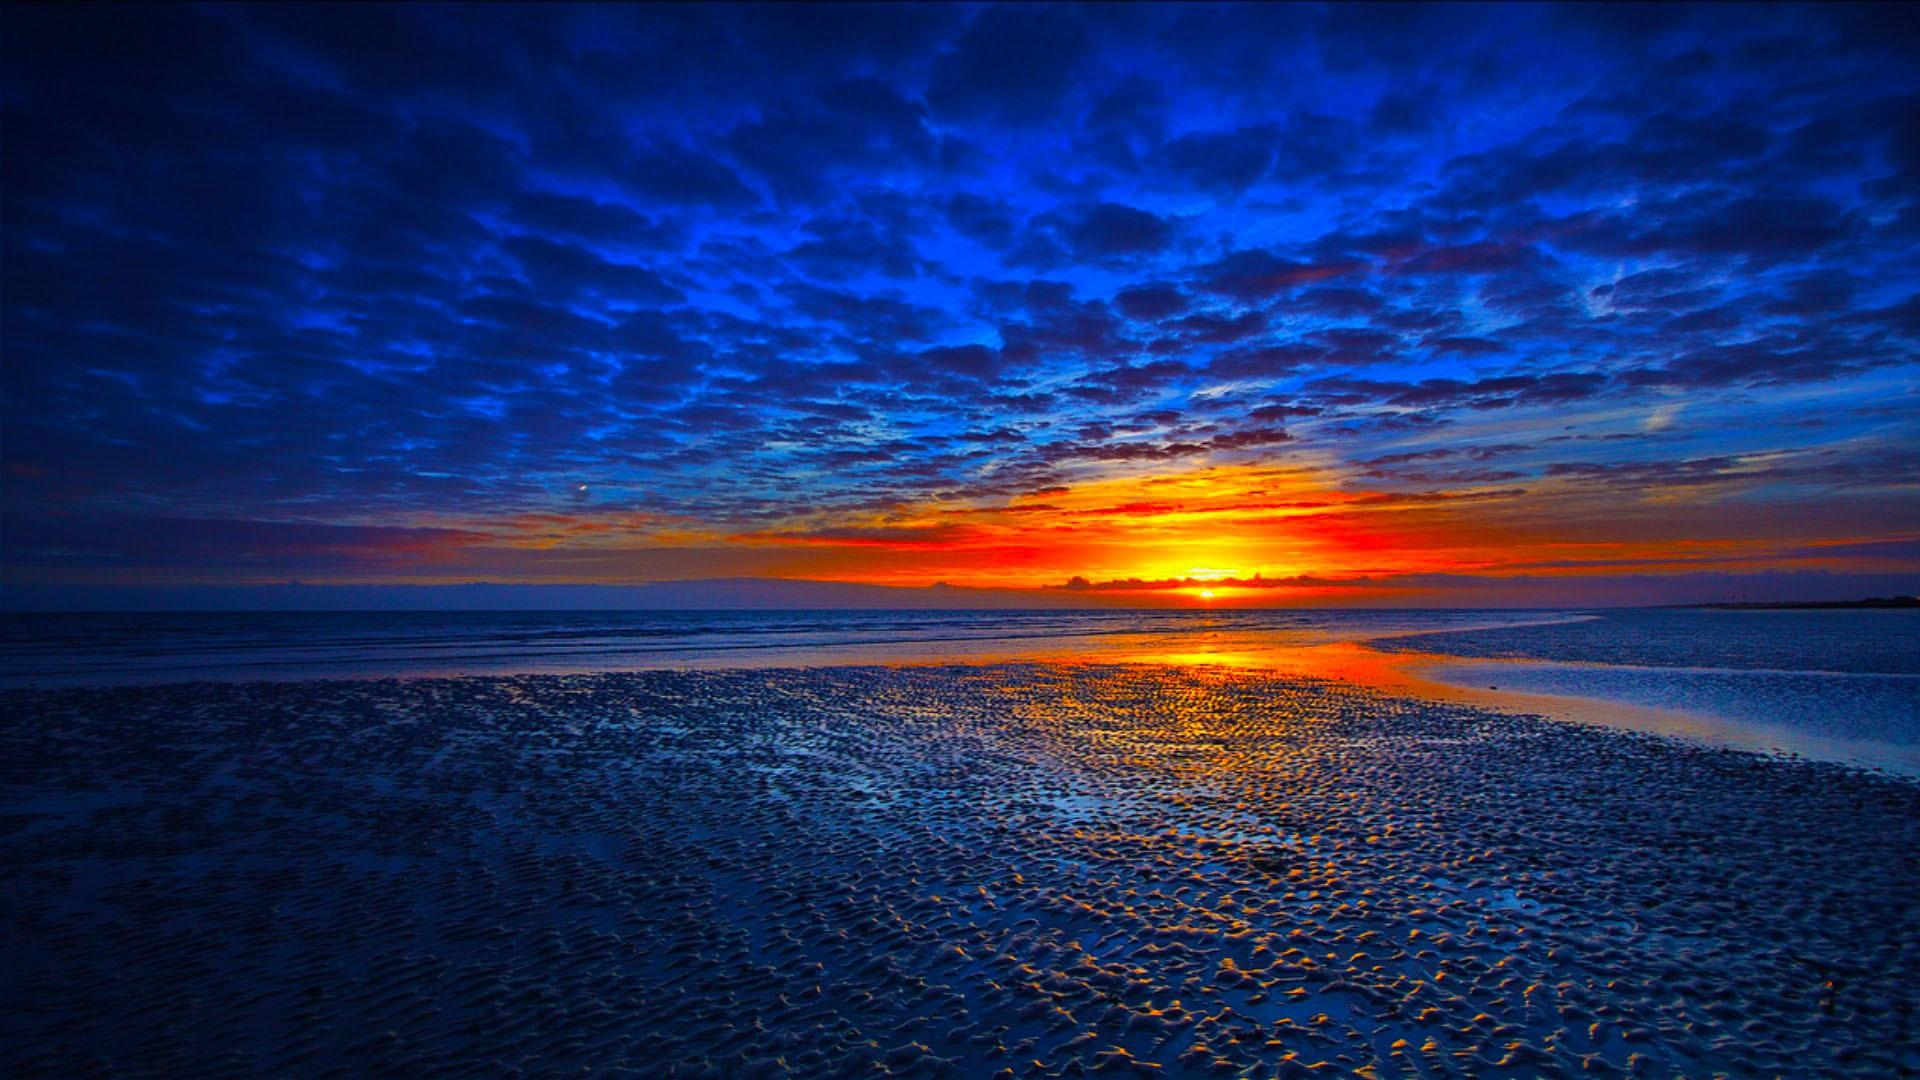 1080p blue sunset background wallpaper hd 1920x1080 1080p ...